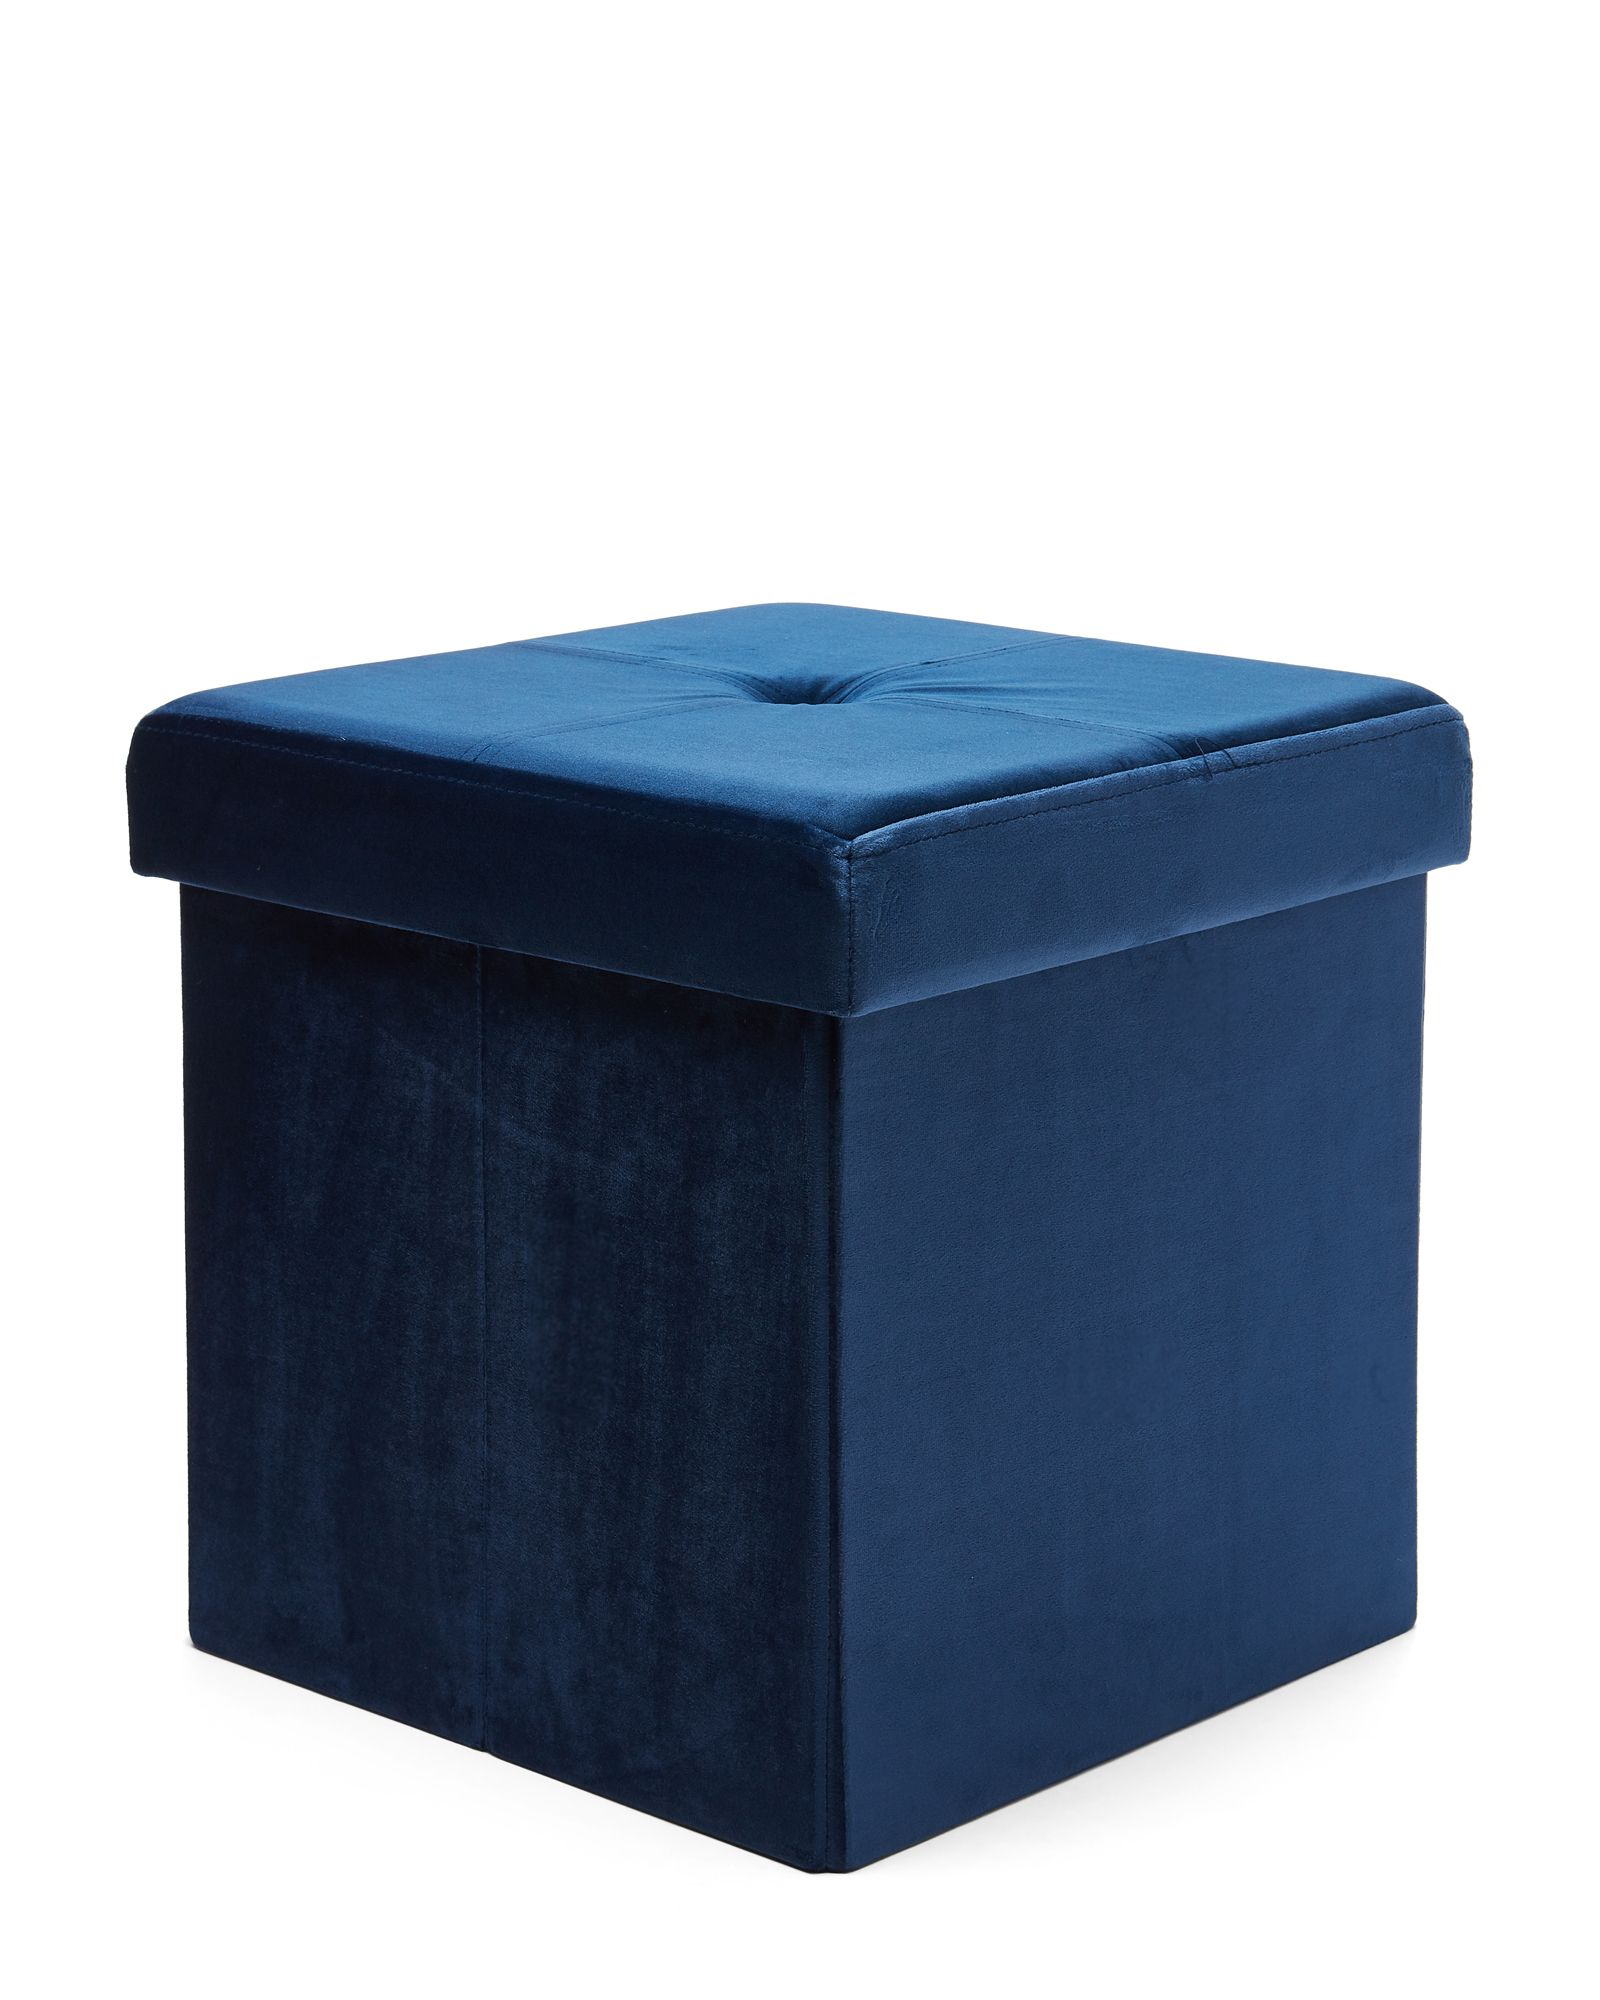 Remarkable Royal Navy 15 Collapsible Storage Ottoman In 2019 Ottoman Gmtry Best Dining Table And Chair Ideas Images Gmtryco